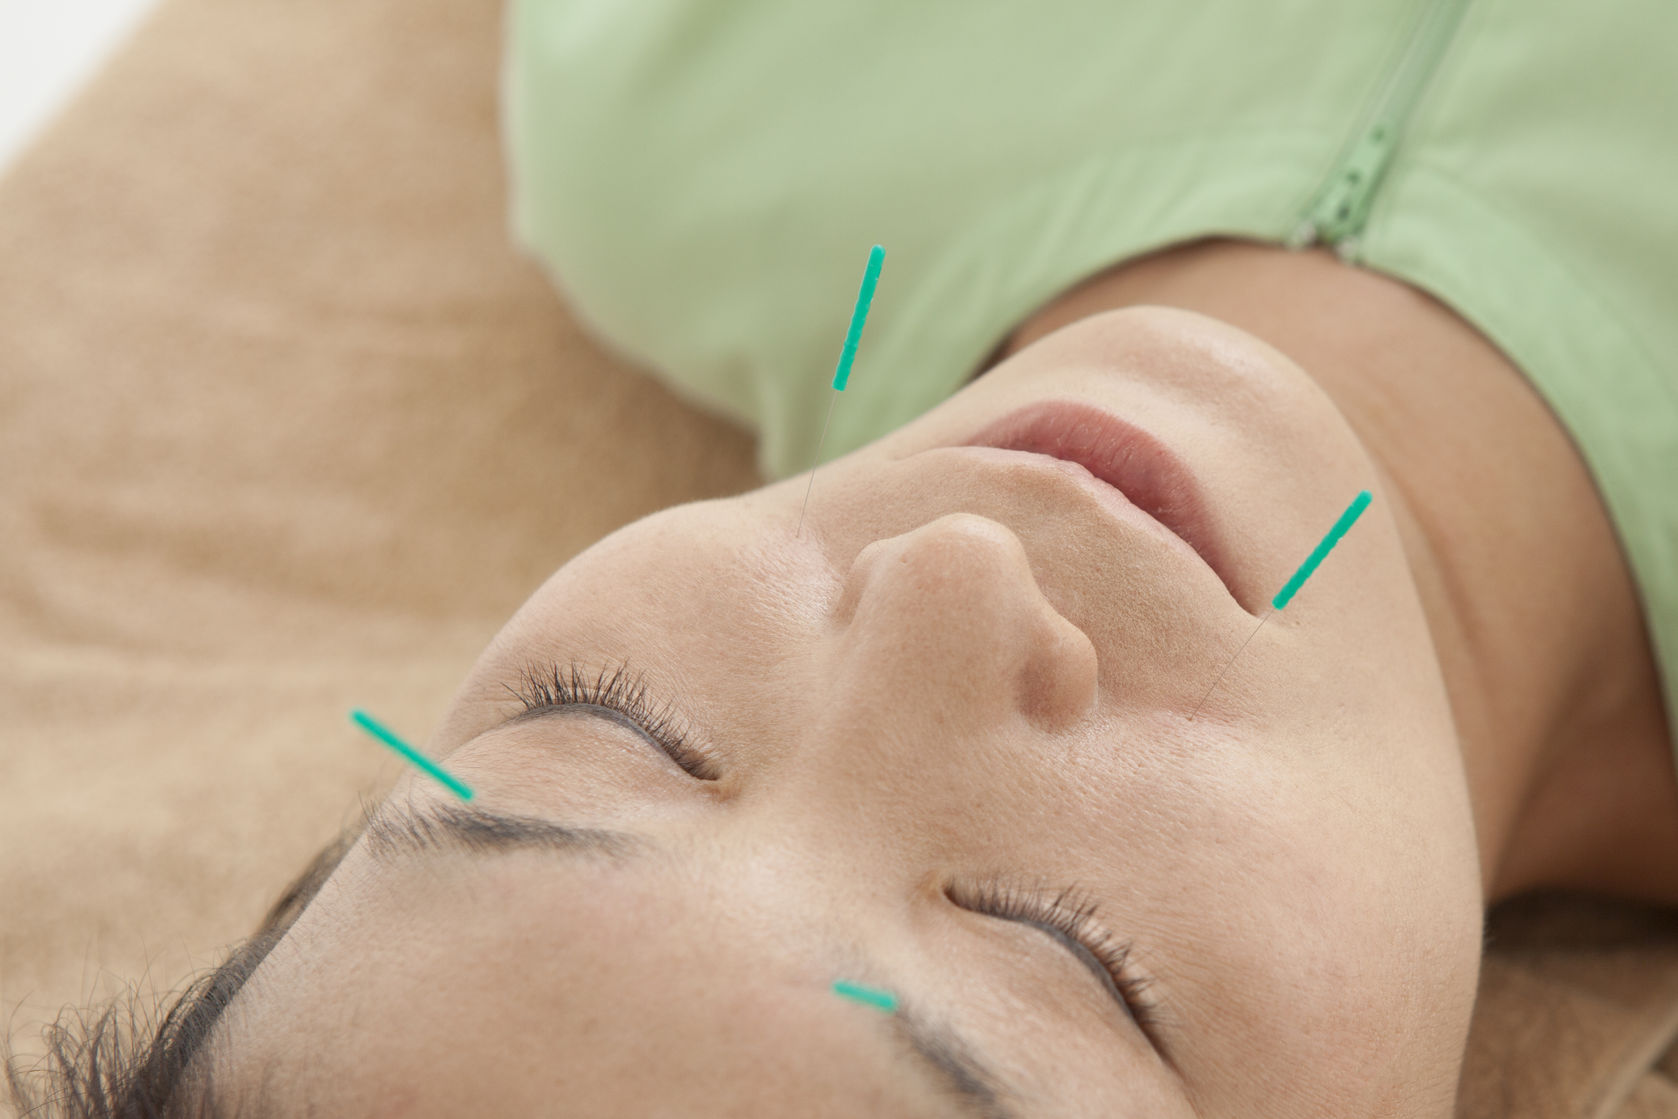 acupuncture reduces wrinkles